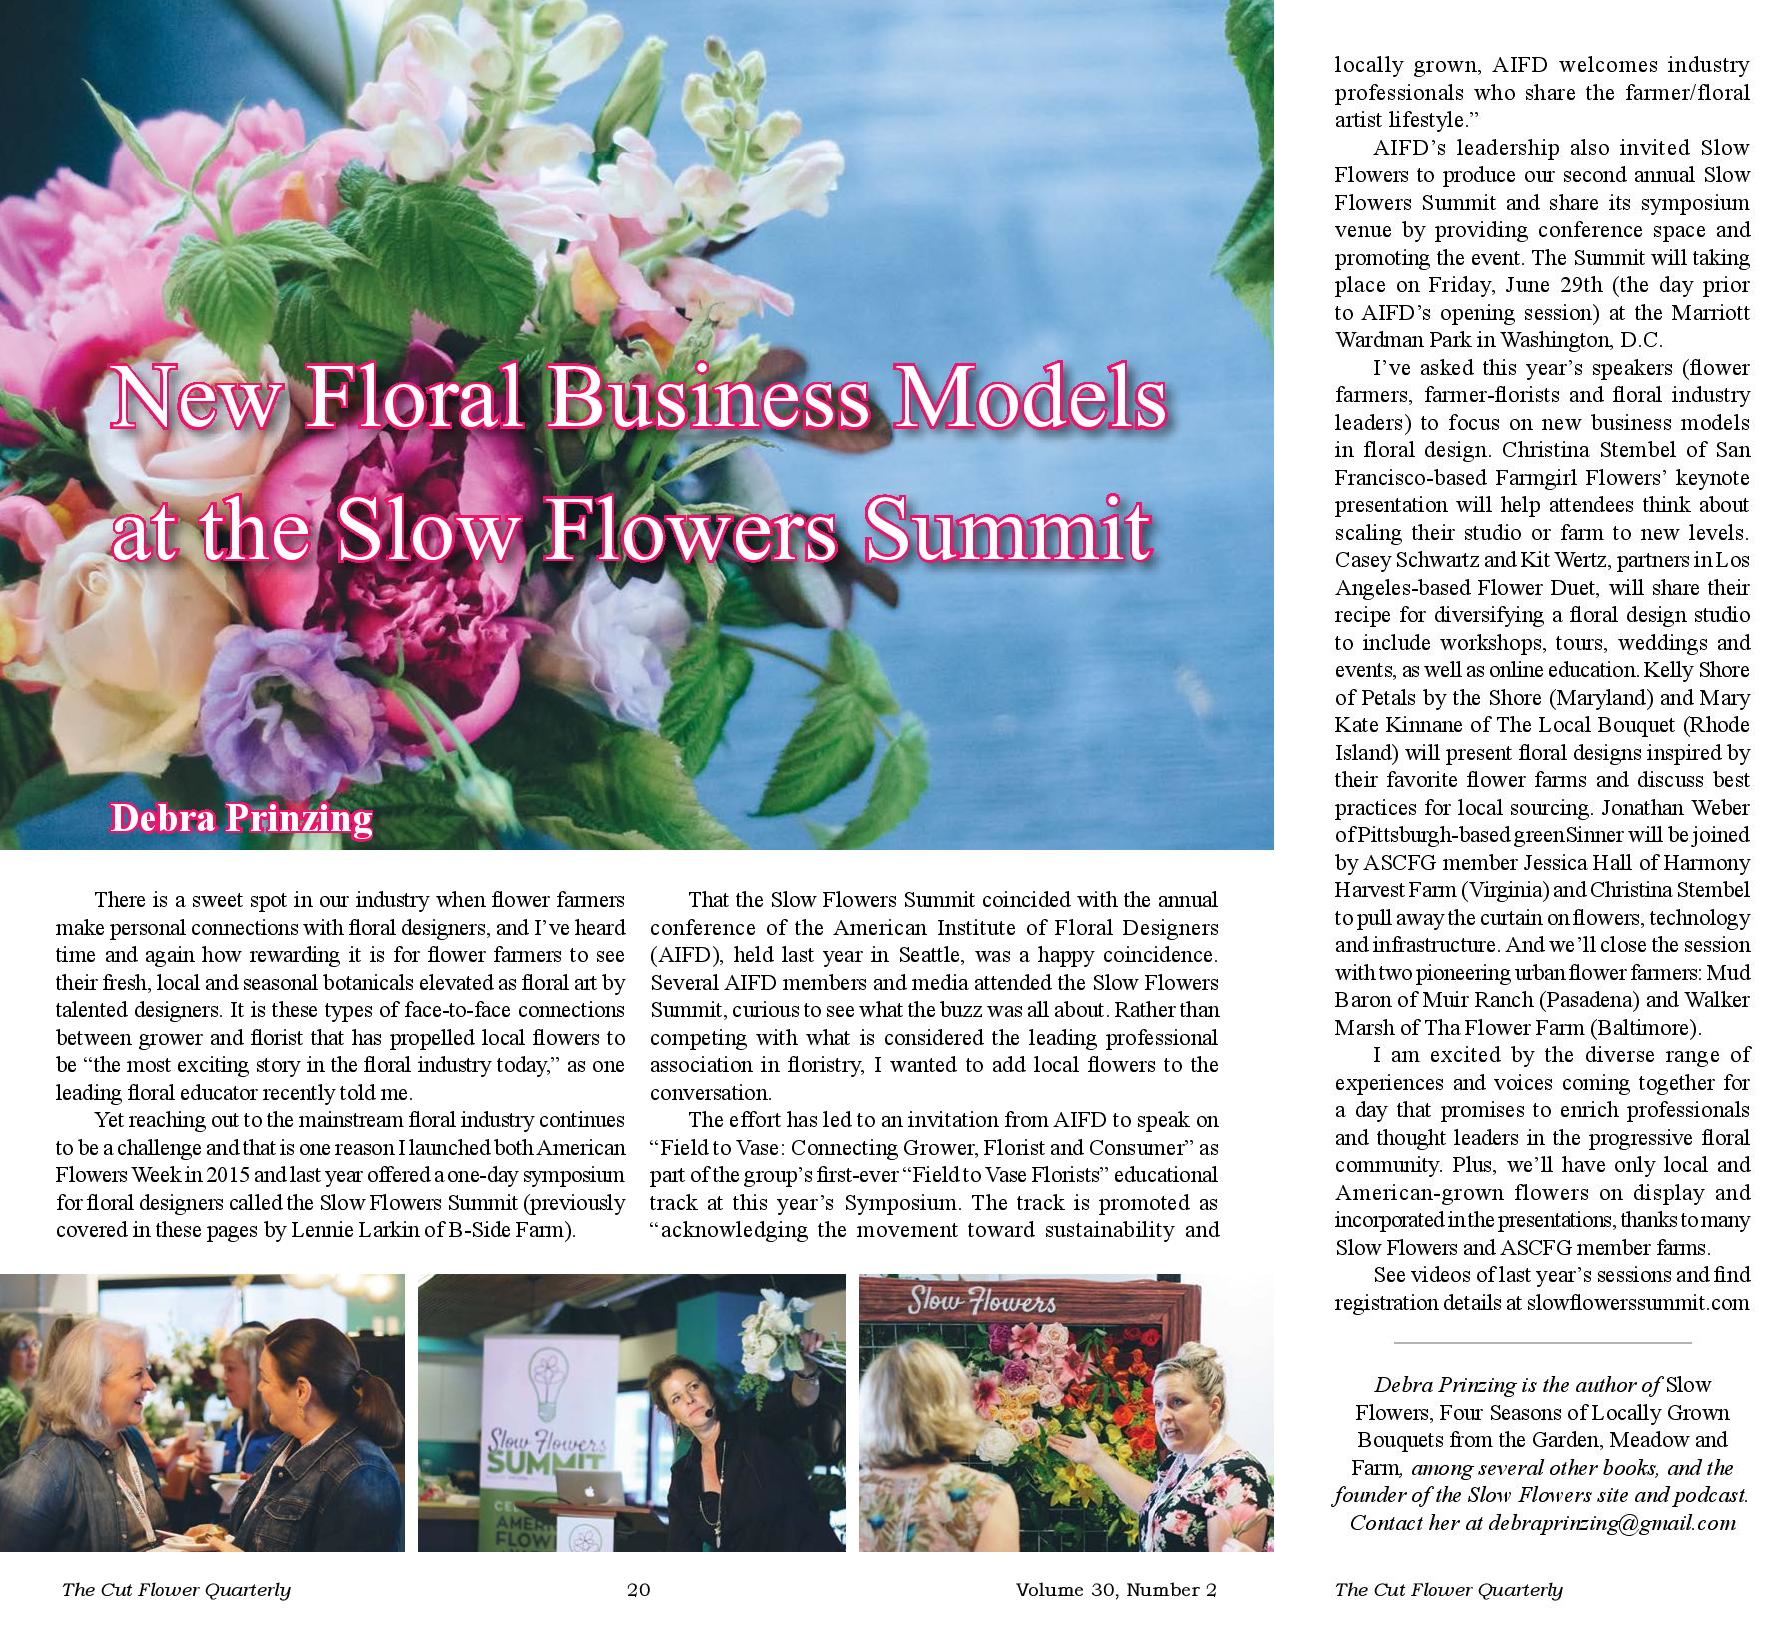 American flowers week june 28 to july 4 2019 celebrating note this article appears in the spring 2018 issue of cut flower quarterly the publication of association of specialty cut flower growers mightylinksfo